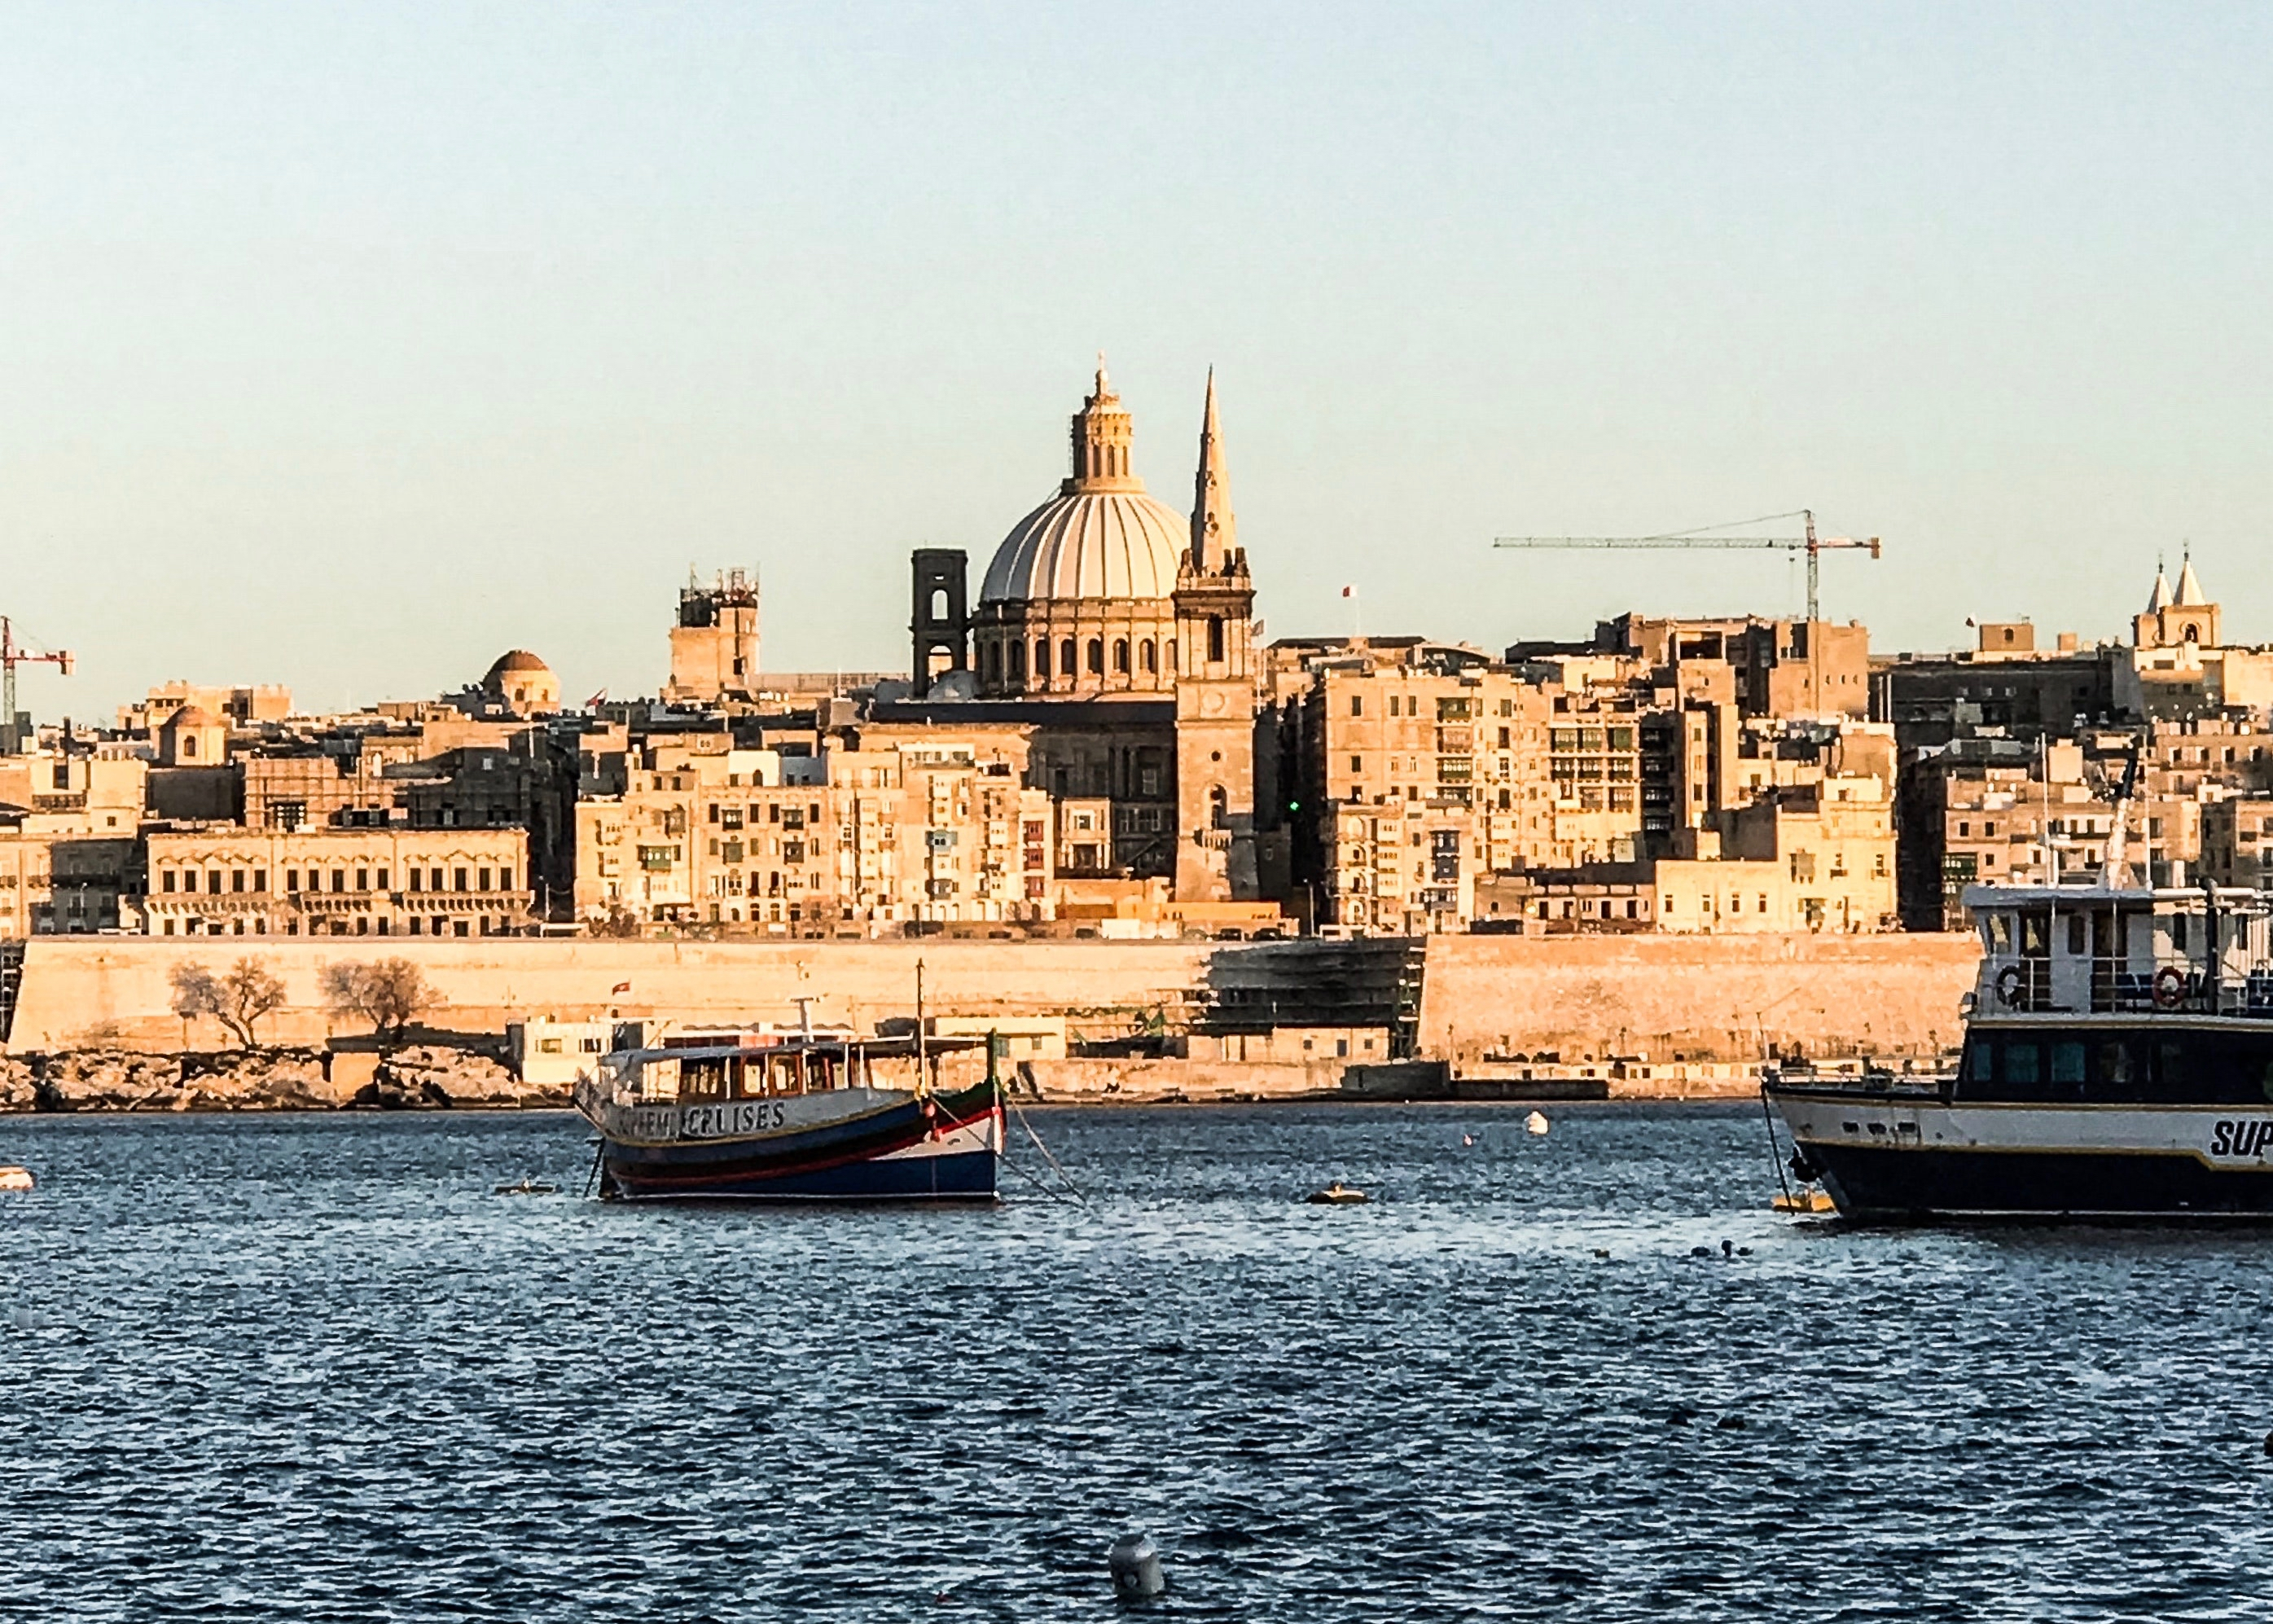 Valletta, Malta. Photo by Ines Bahr from Pexels https://www.pexels.com/photo/two-ship-on-body-of-water-near-buildings-2098179/